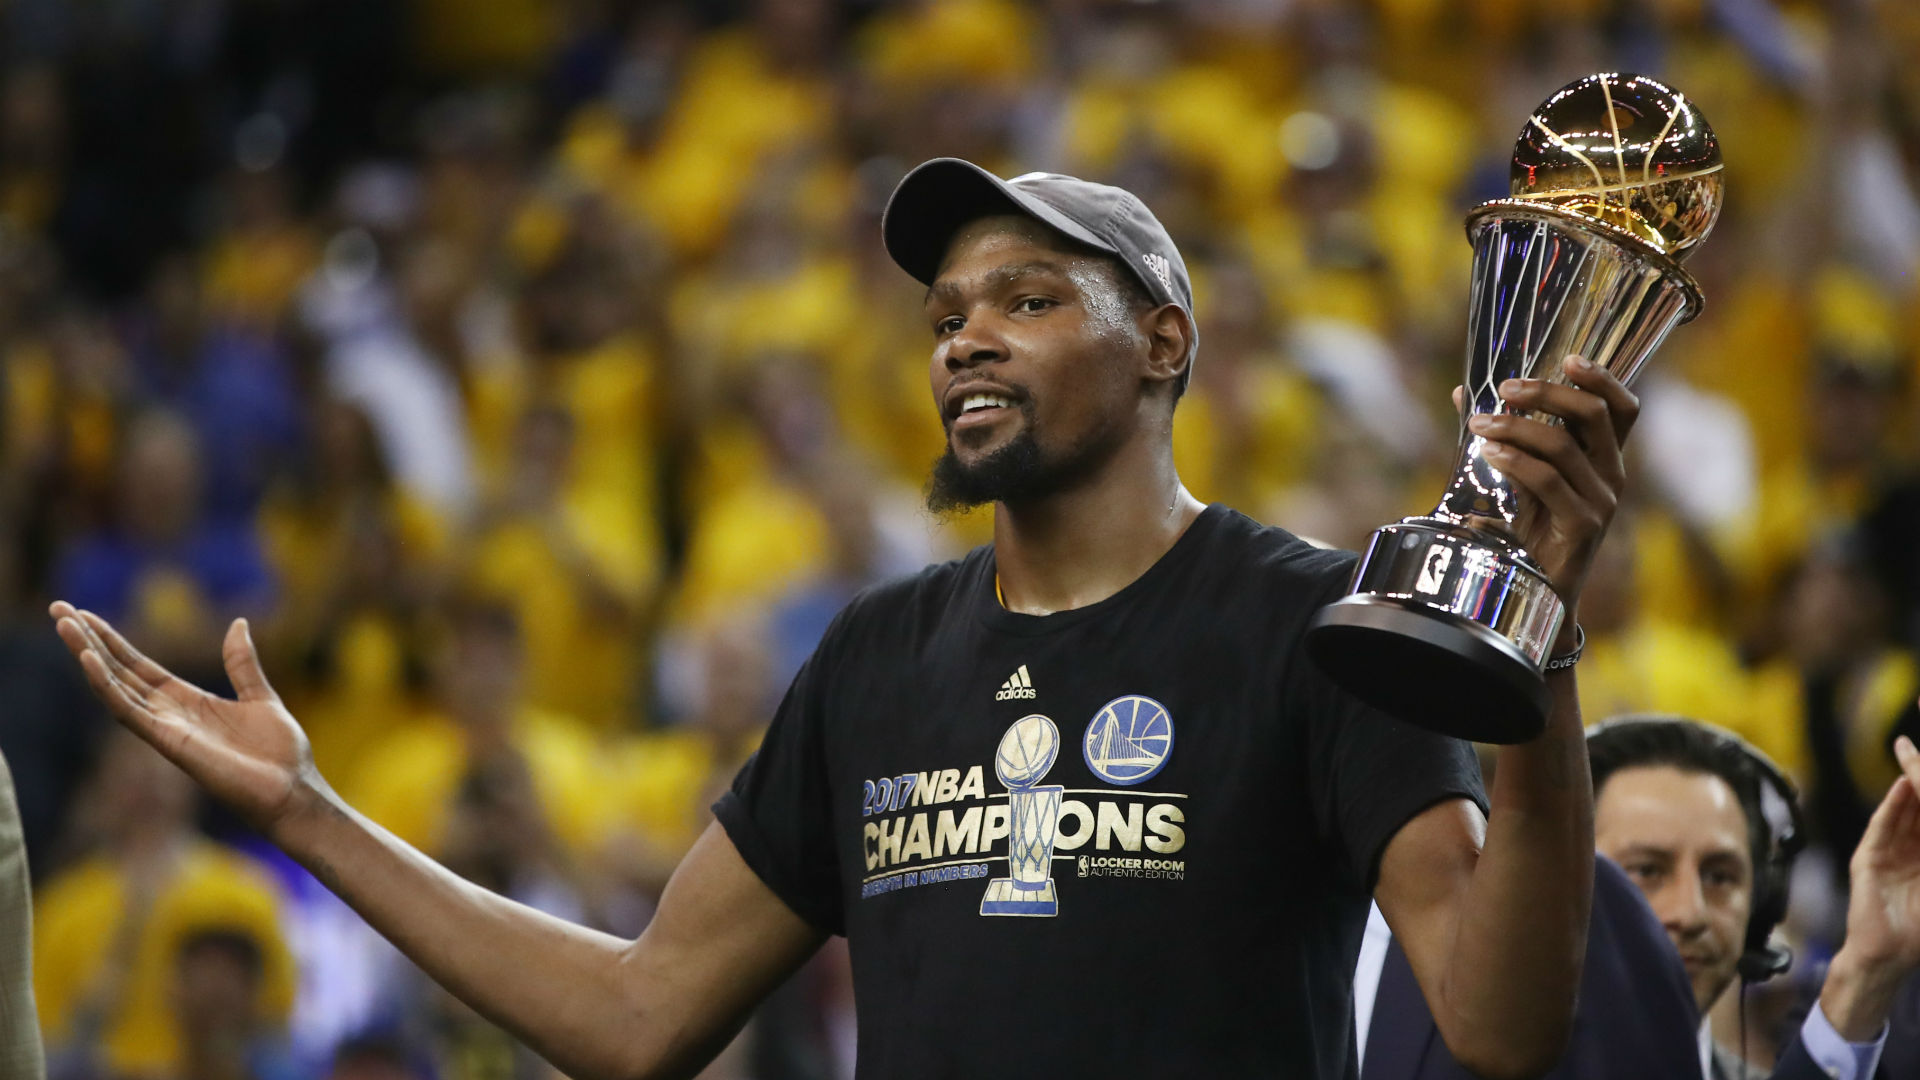 Kevin Durant's Mother Wanda Proves Once Again She's The Real MVP